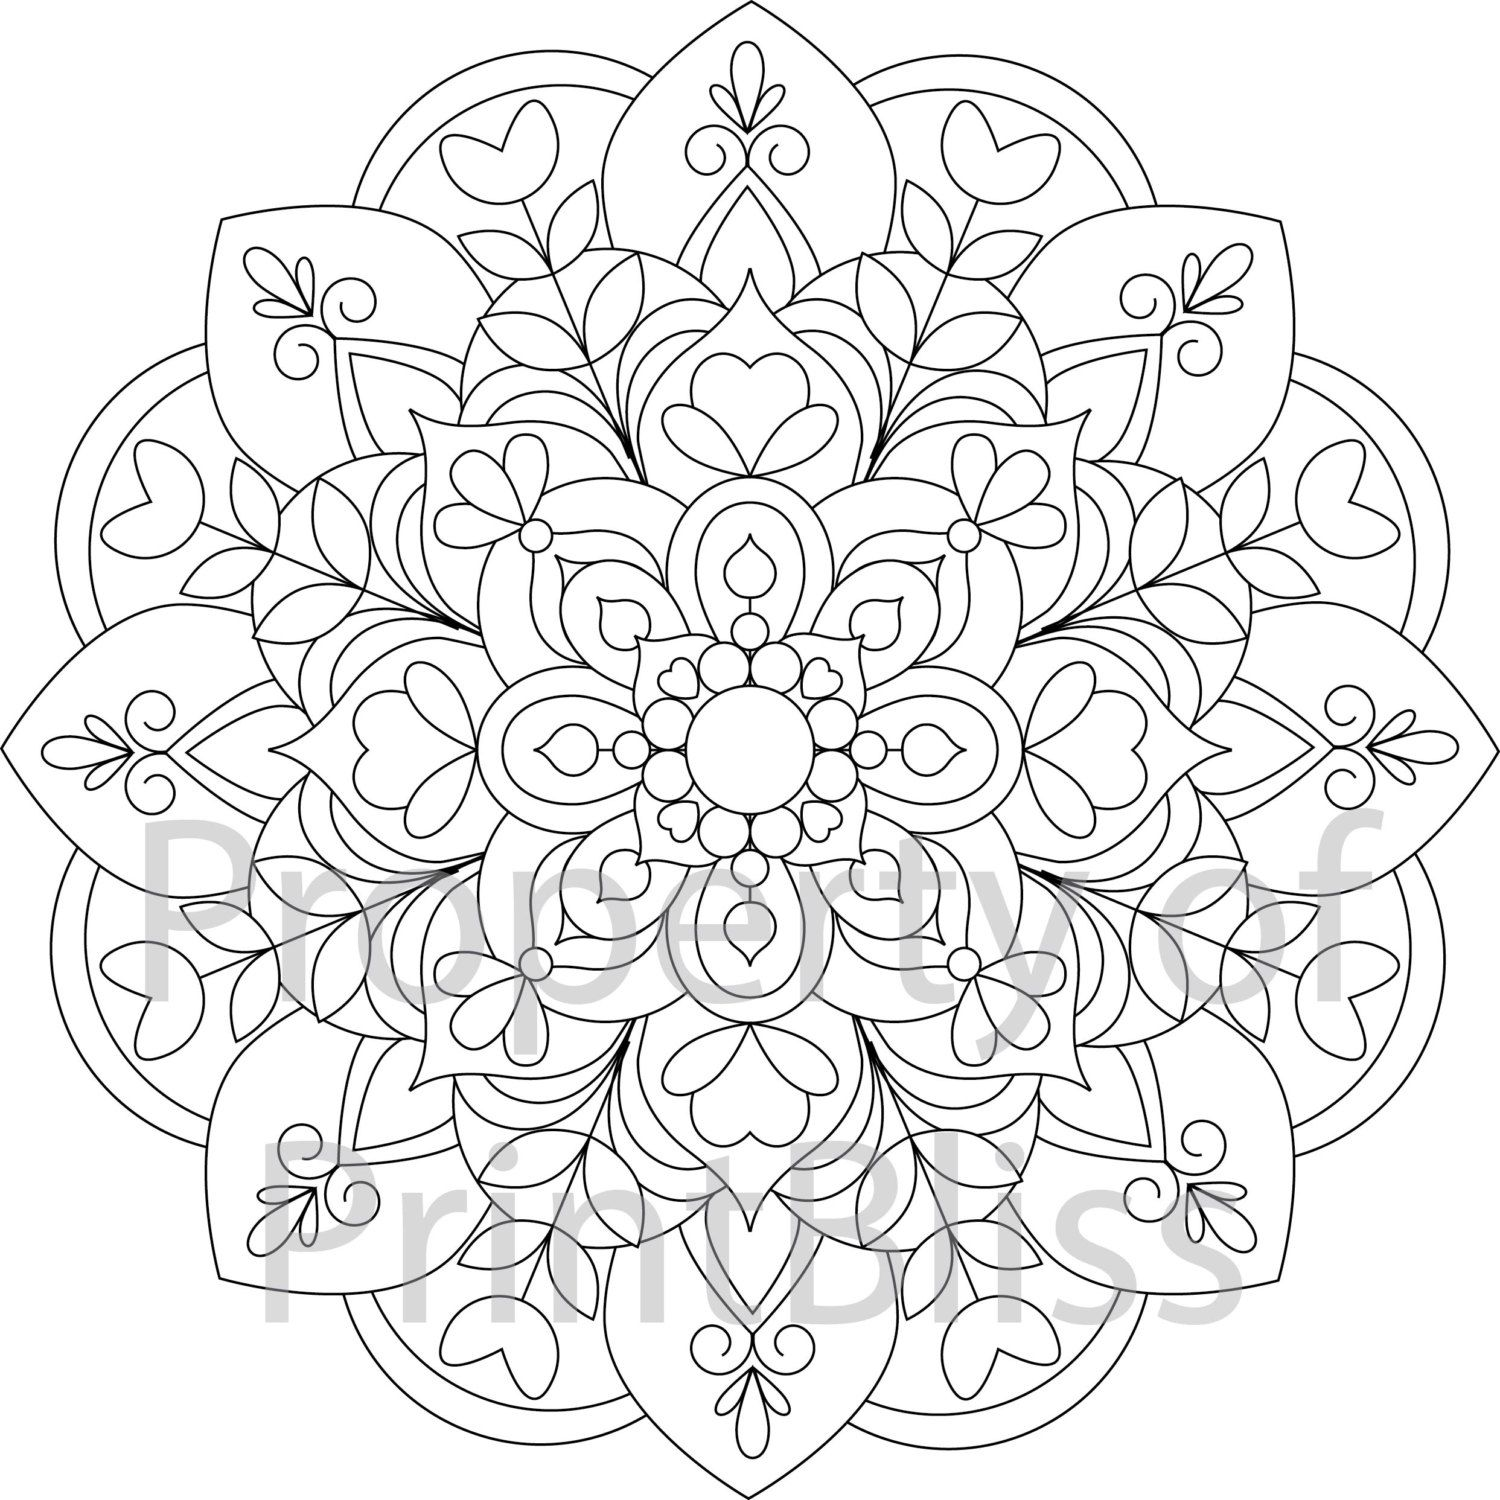 19 Flower Mandala Printable Coloring Page Etsy Mandala Coloring Books Mandala Printable Flower Coloring Pages